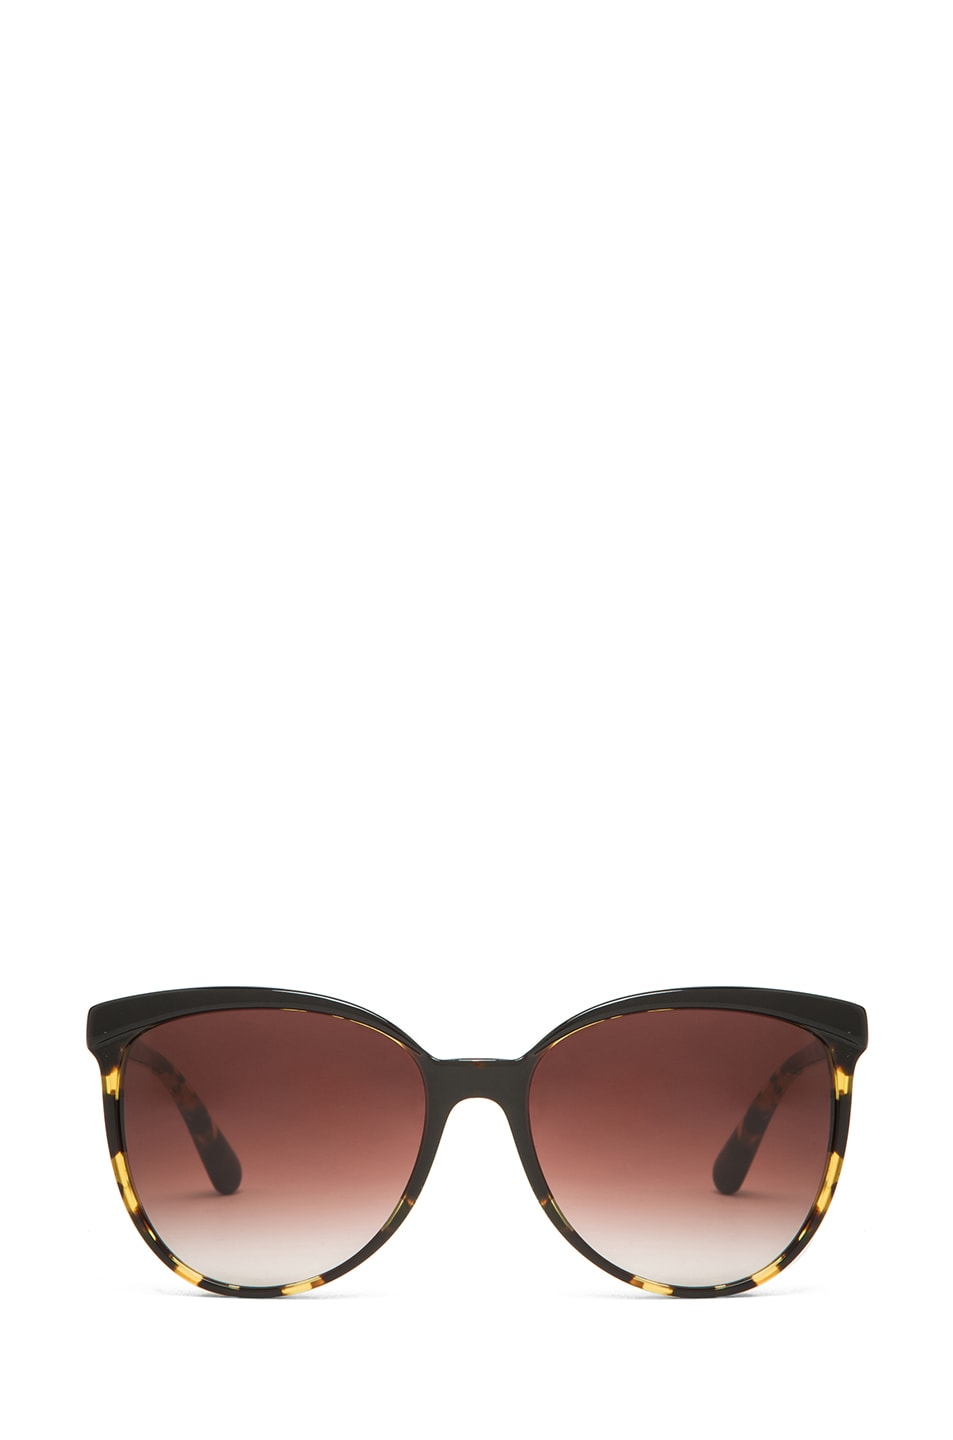 Image 1 of Oliver Peoples Ria Sunglasses in Dark Tortoise Brown